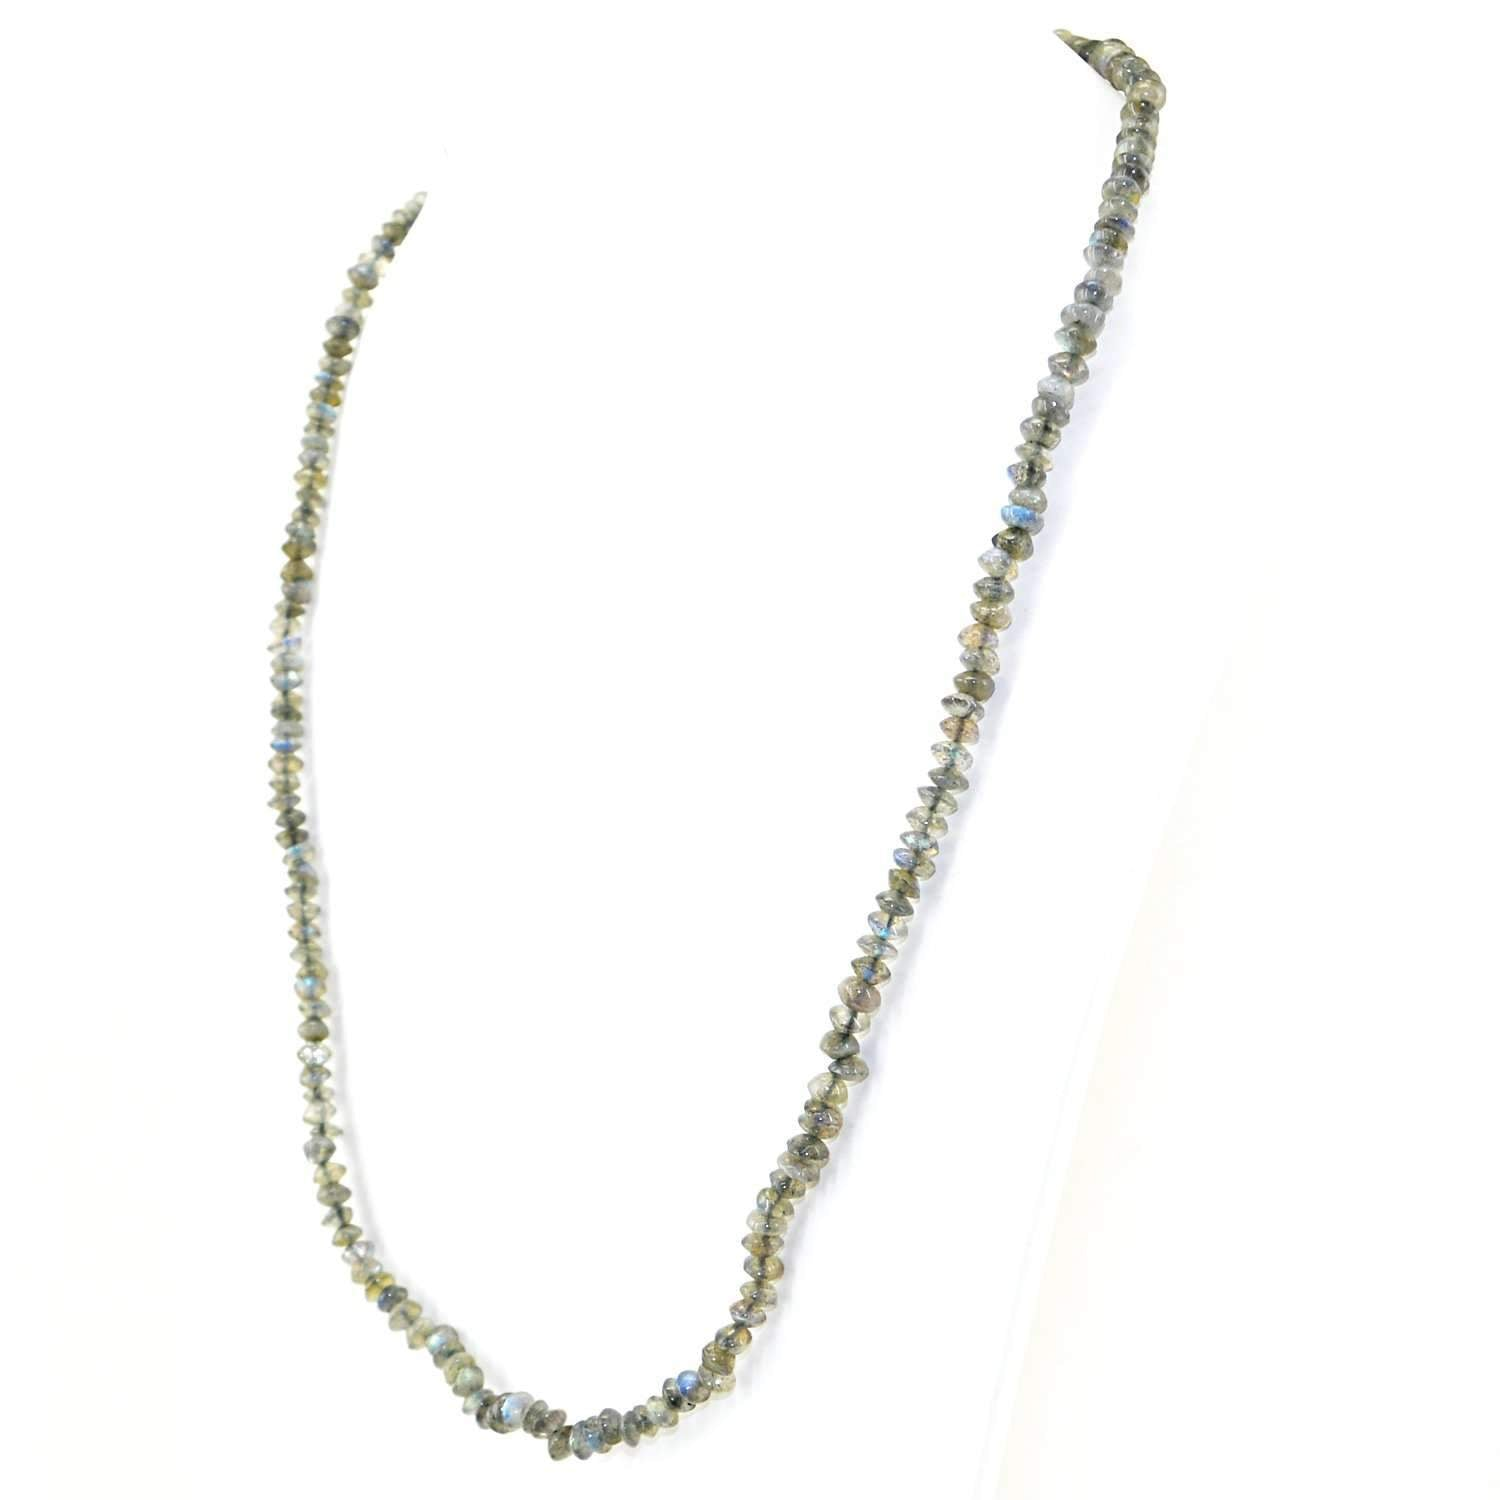 gemsmore:Single Strand Blue Flash Labradorite Necklace Natural Faceted Round Beads